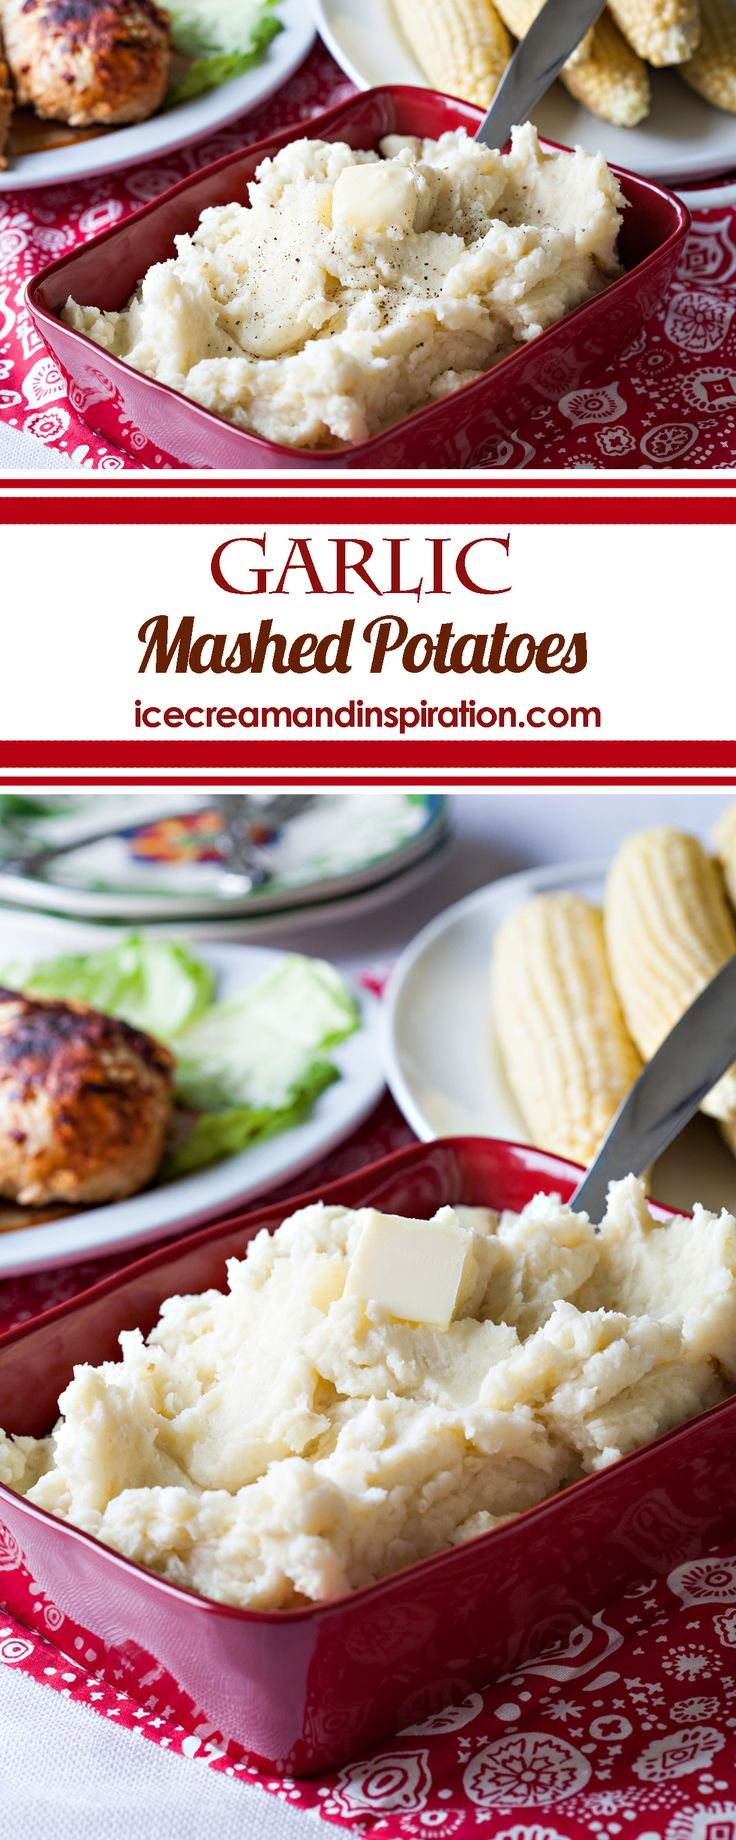 Perfect Garlic Mashed Potatoes from Cook's Country. Creamy and full of garlic flavor, they will become your new favorite mashed potatoes!